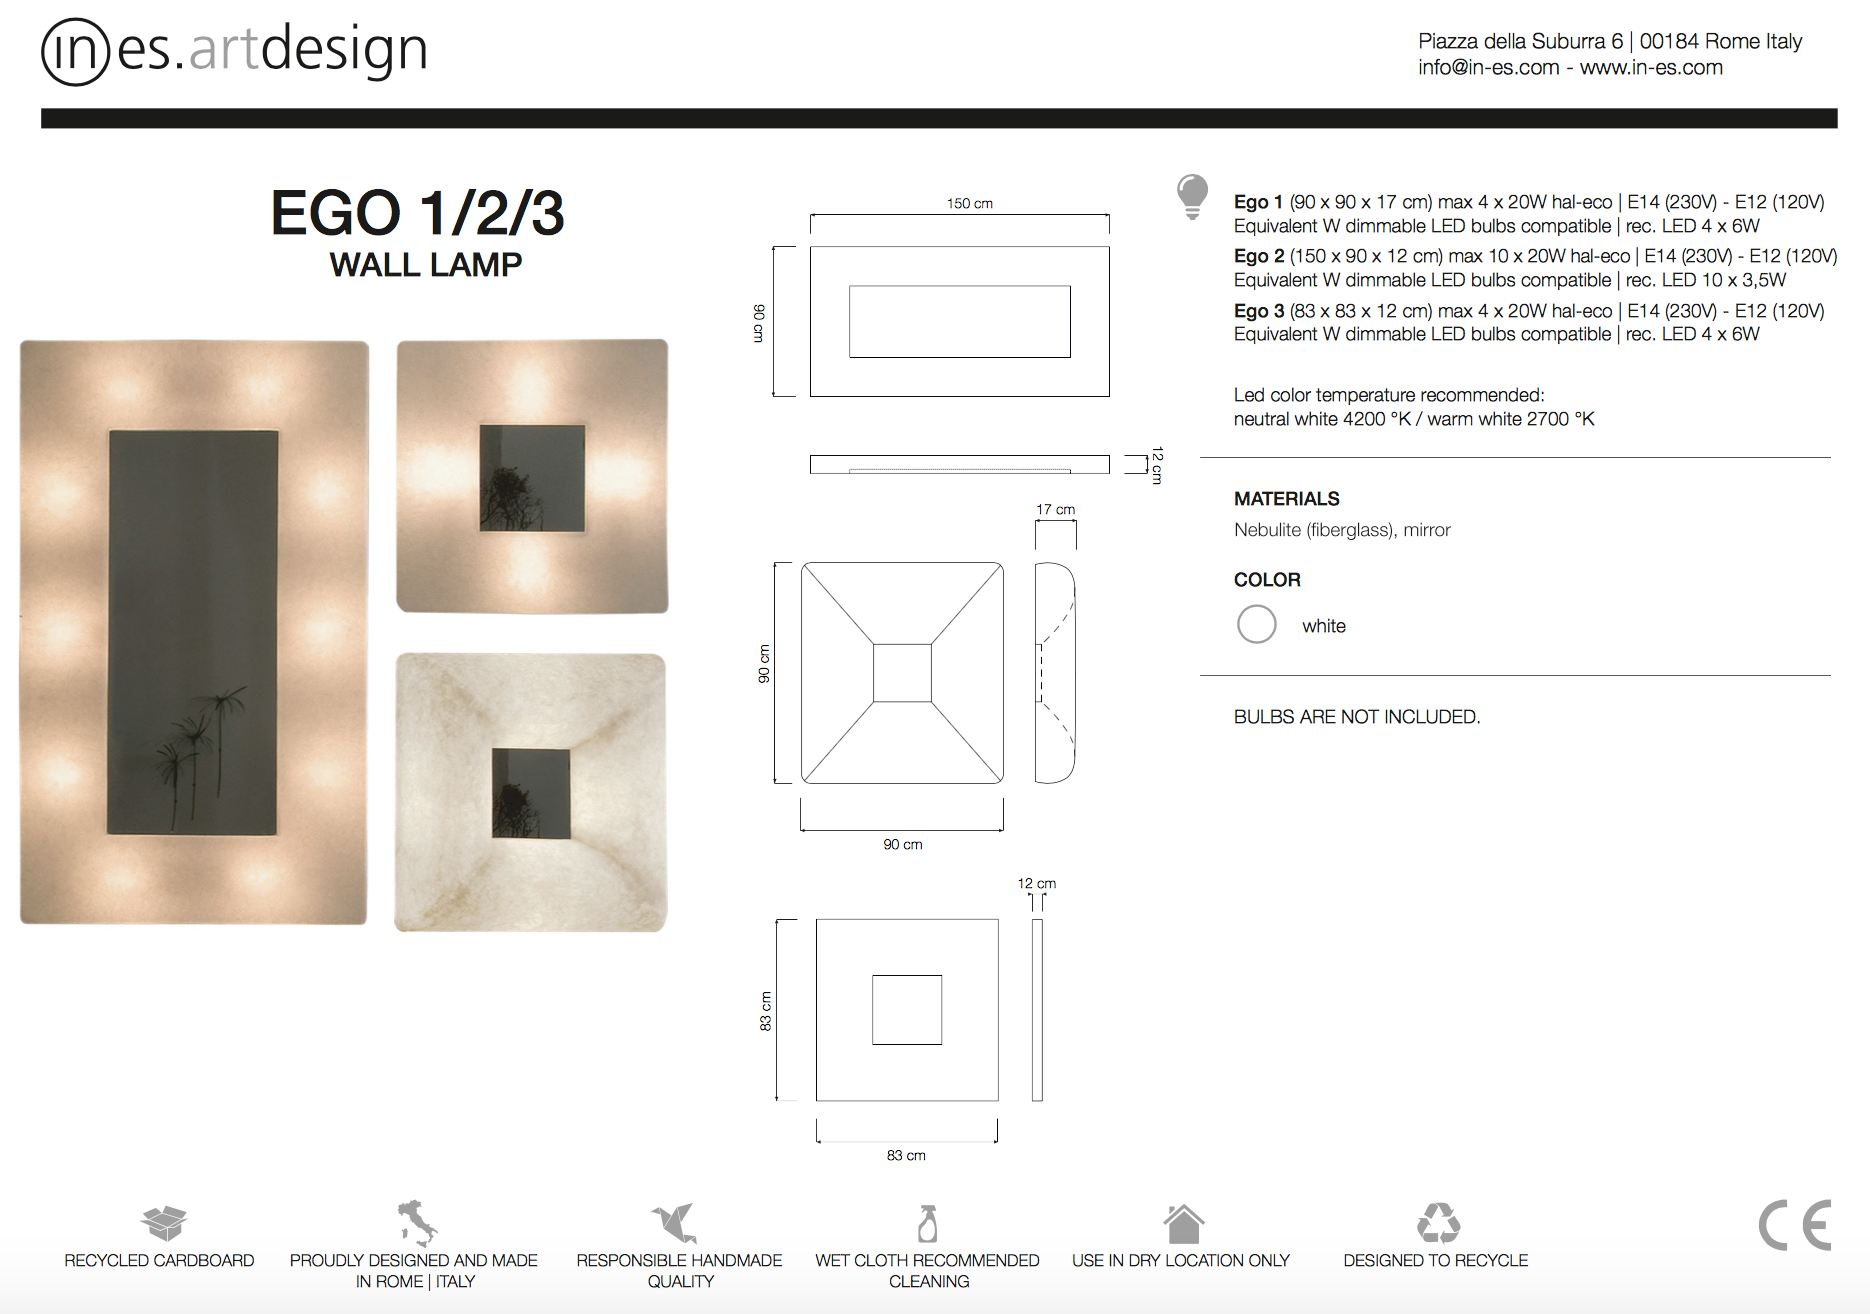 Ego Wall Mirror Light In Es Art Design